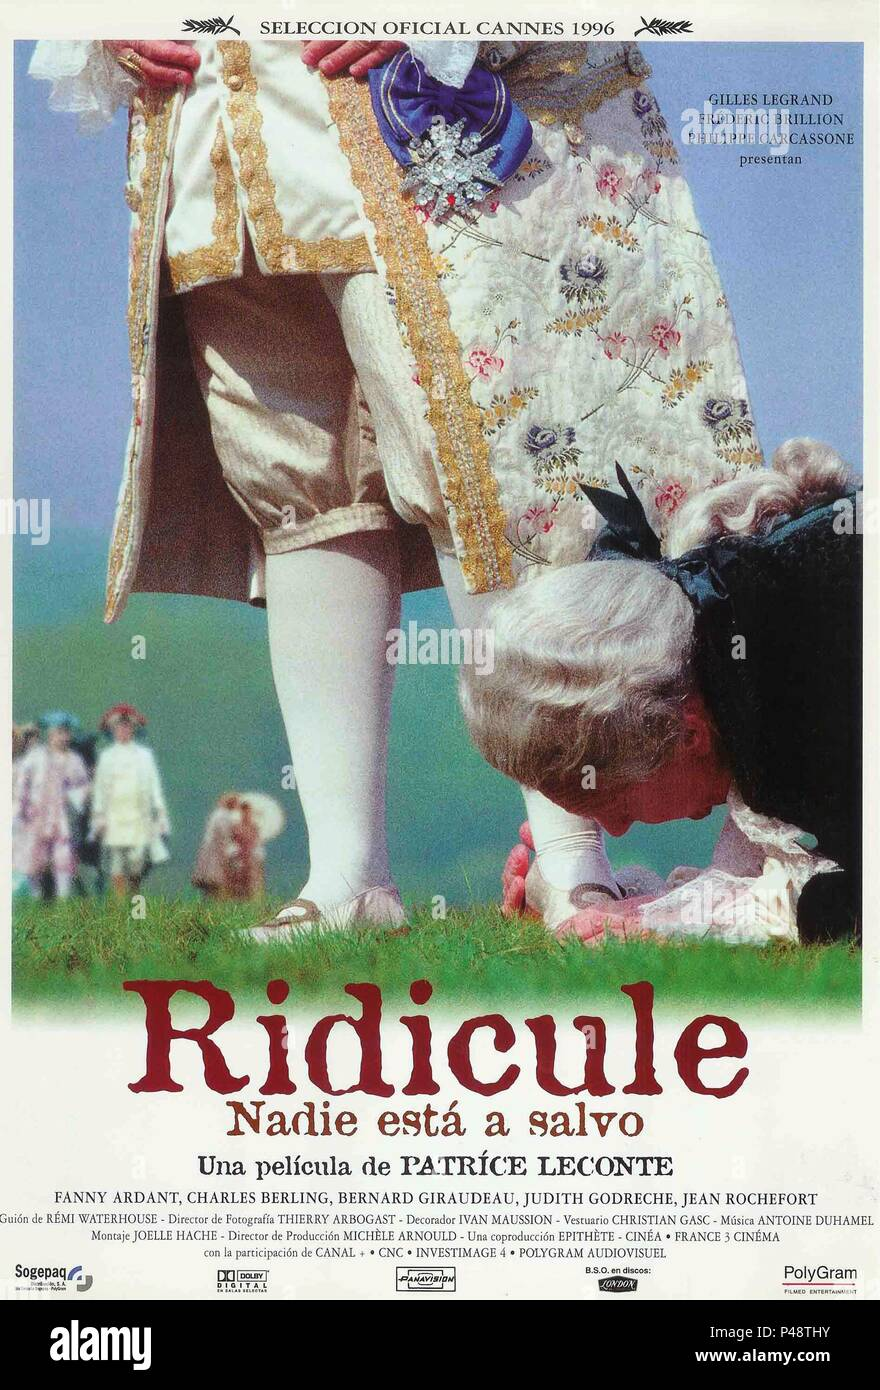 original-film-title-ridicule-english-tit